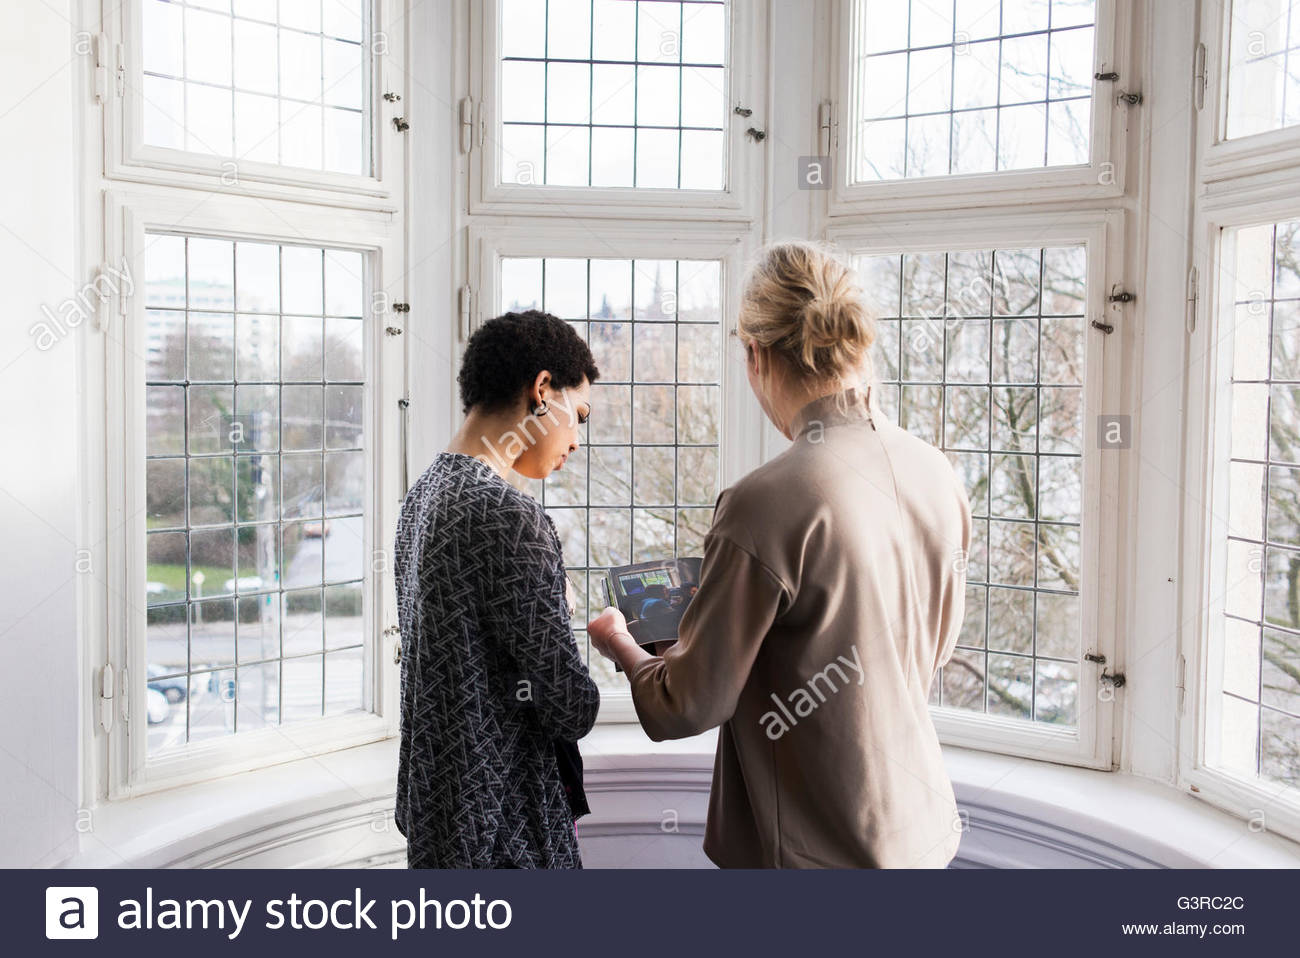 Sweden, Two women talking and reading book - Stock Image